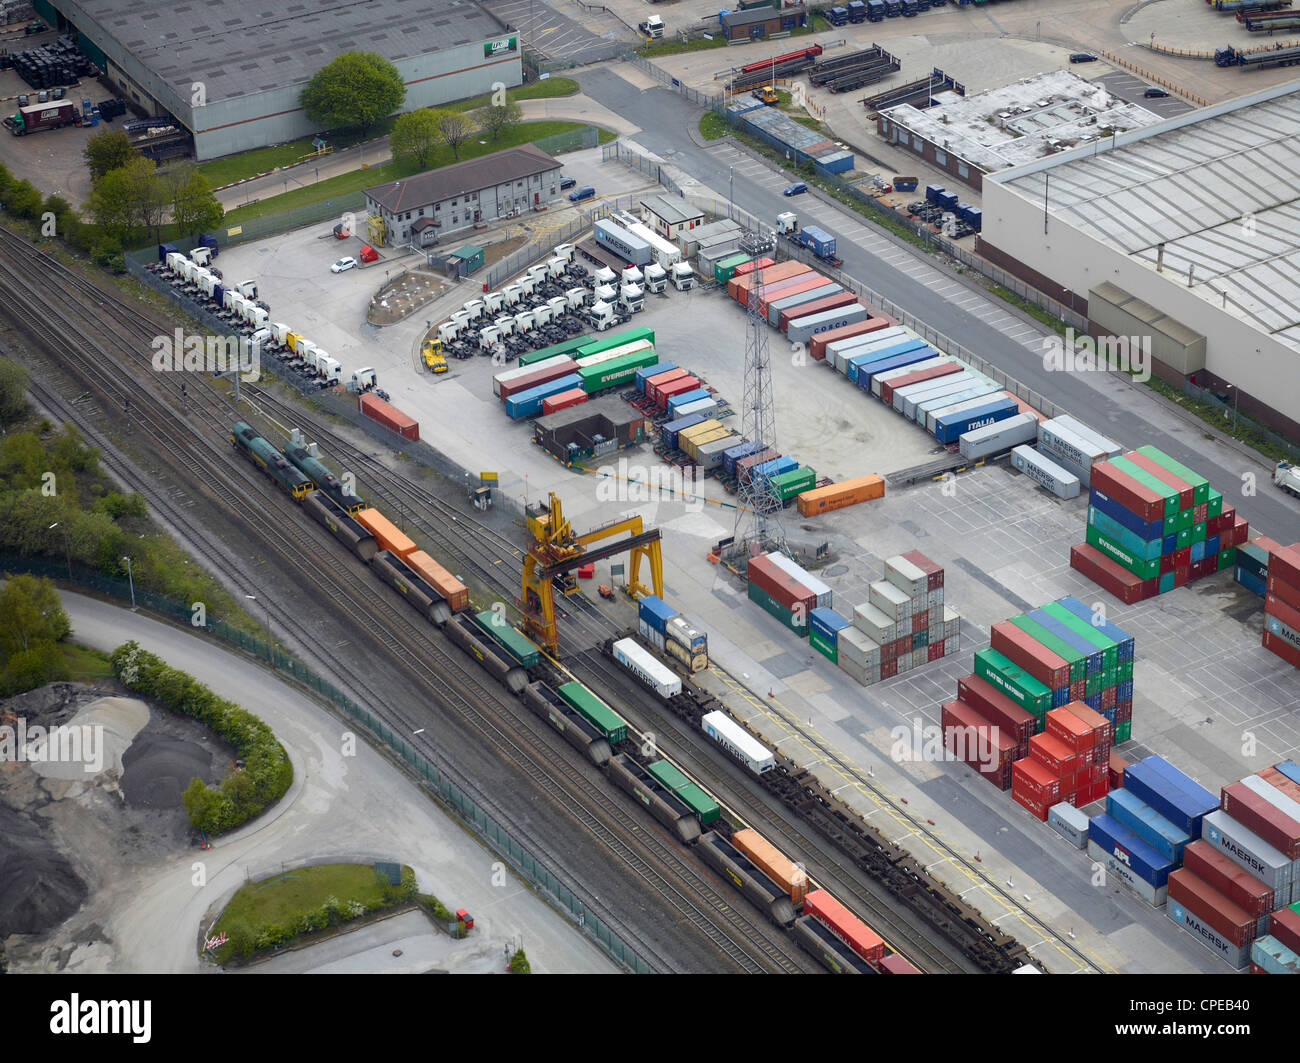 Aerial view of Leeds Freightliner Terminal, Leeds, West Yorkshire, Northern England - Stock Image